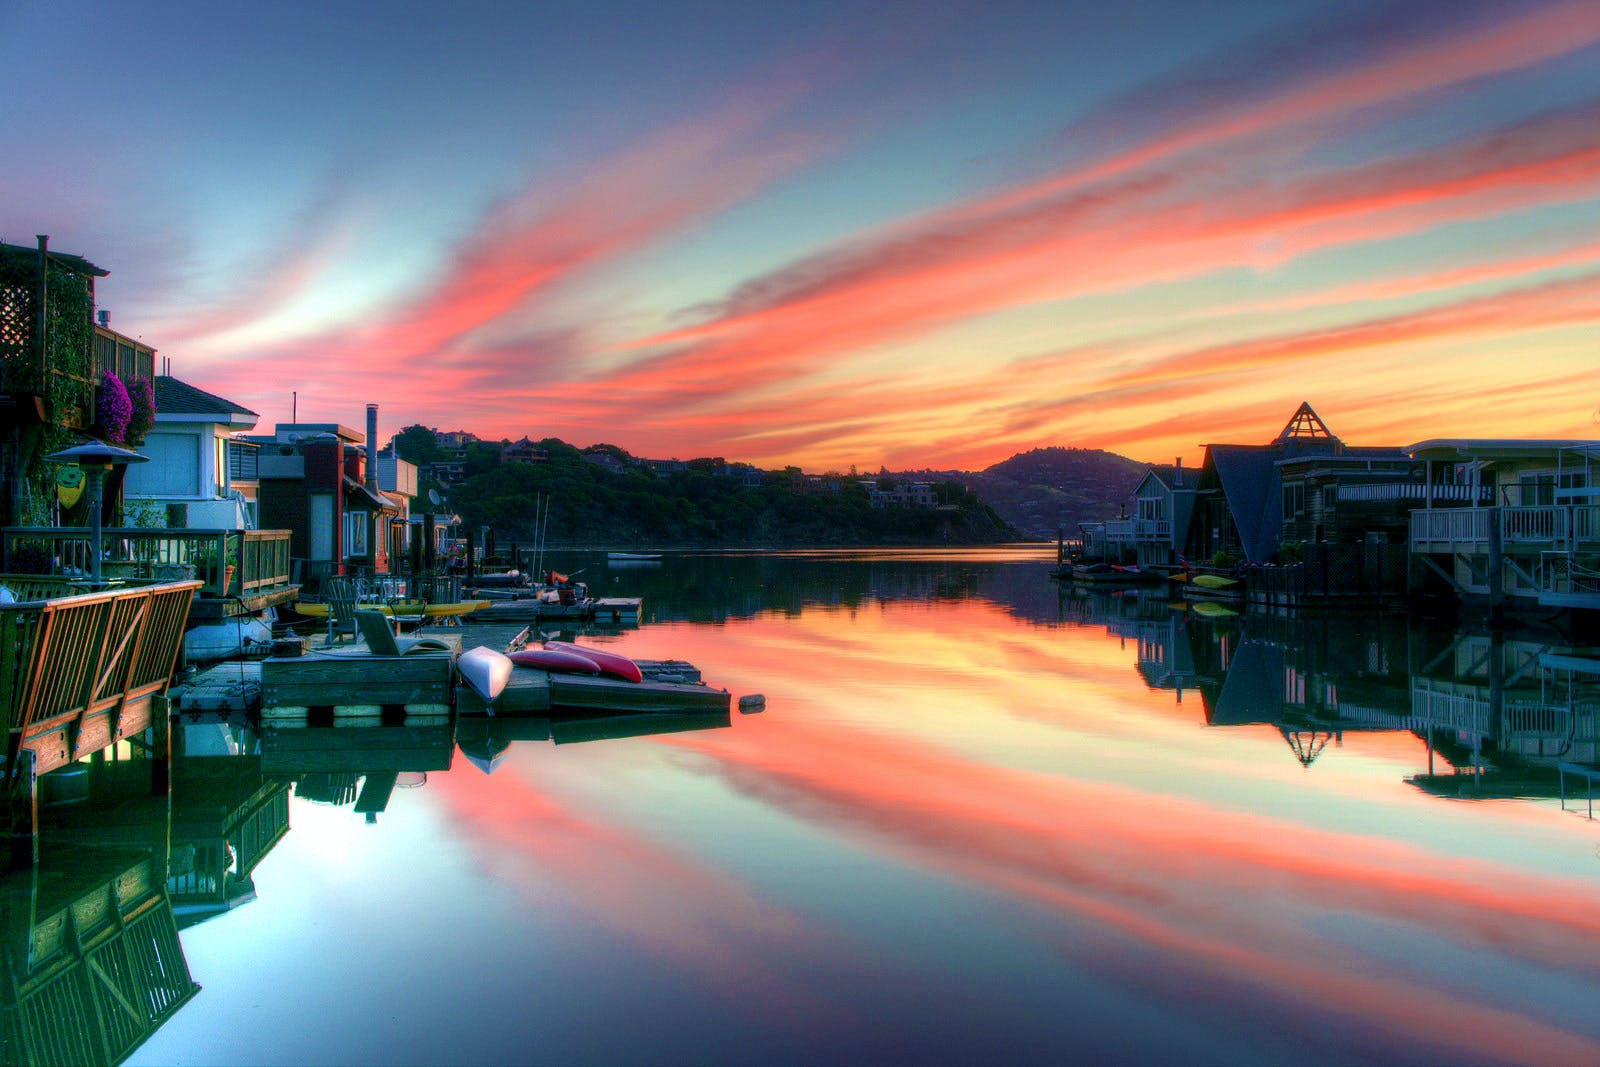 Landscape Photography of Canal and Houses